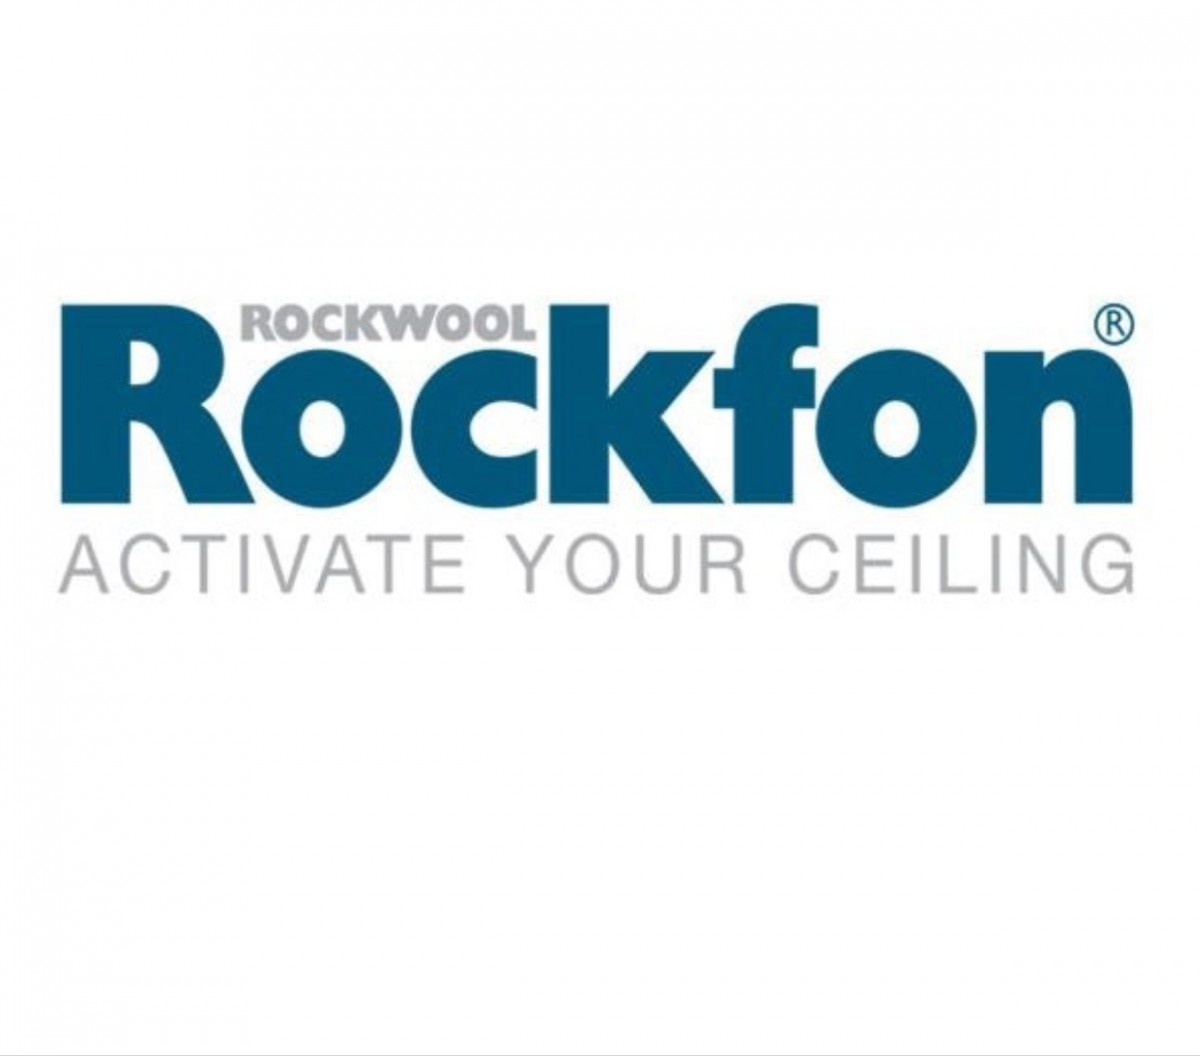 Rockfon Logo - Activate Your Ceiling